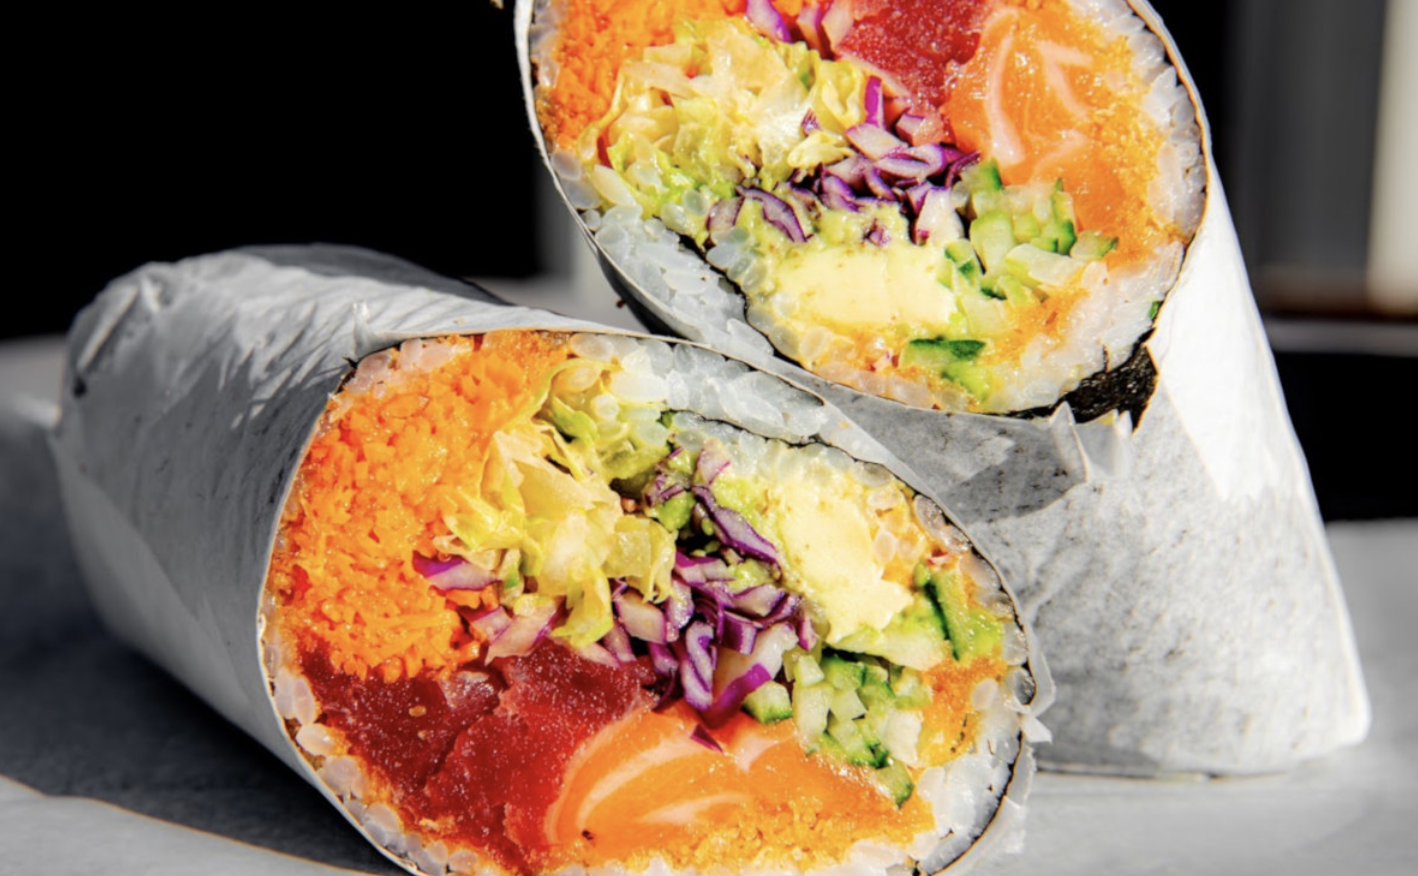 A sushi burrito filled with raw salmon and various vegetables